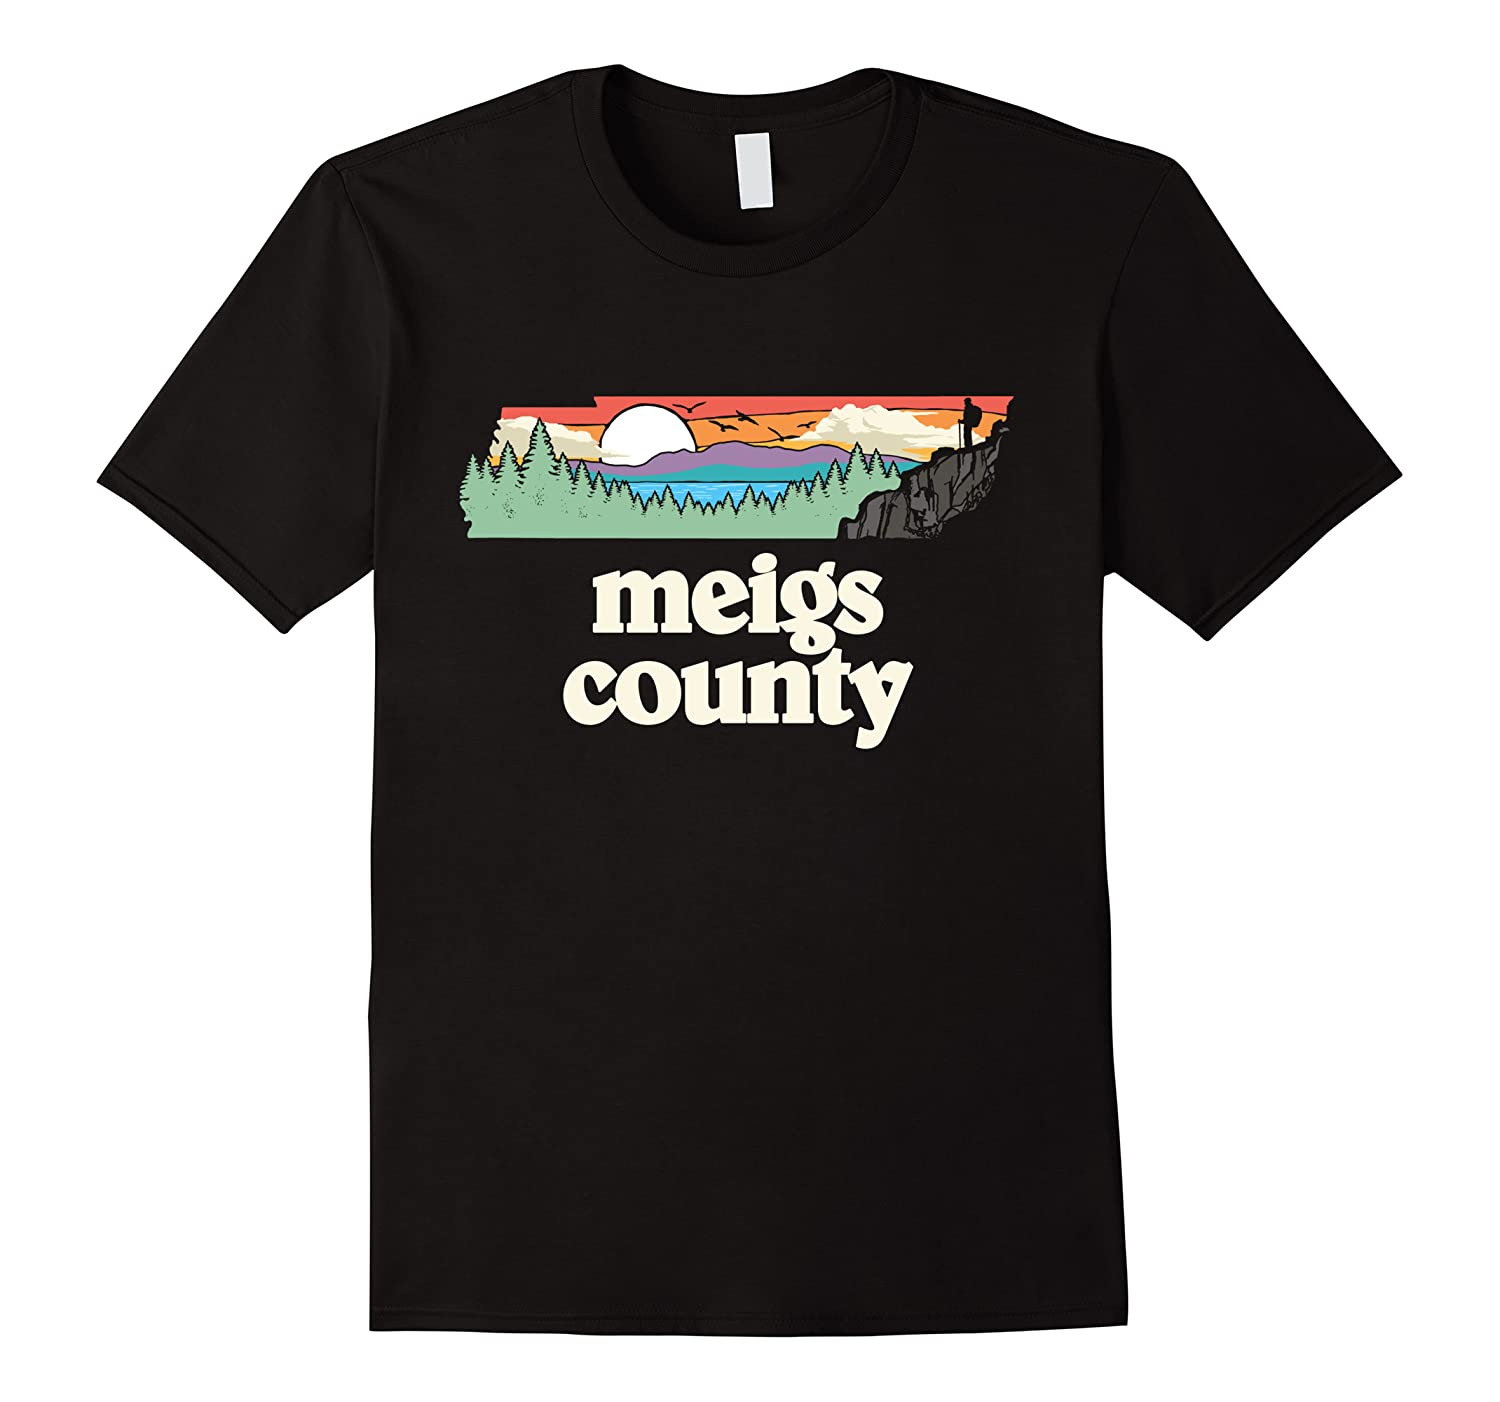 Meigs County Tennessee Outdoors Retro Nature Graphic T Shirt Men Short Sleeve